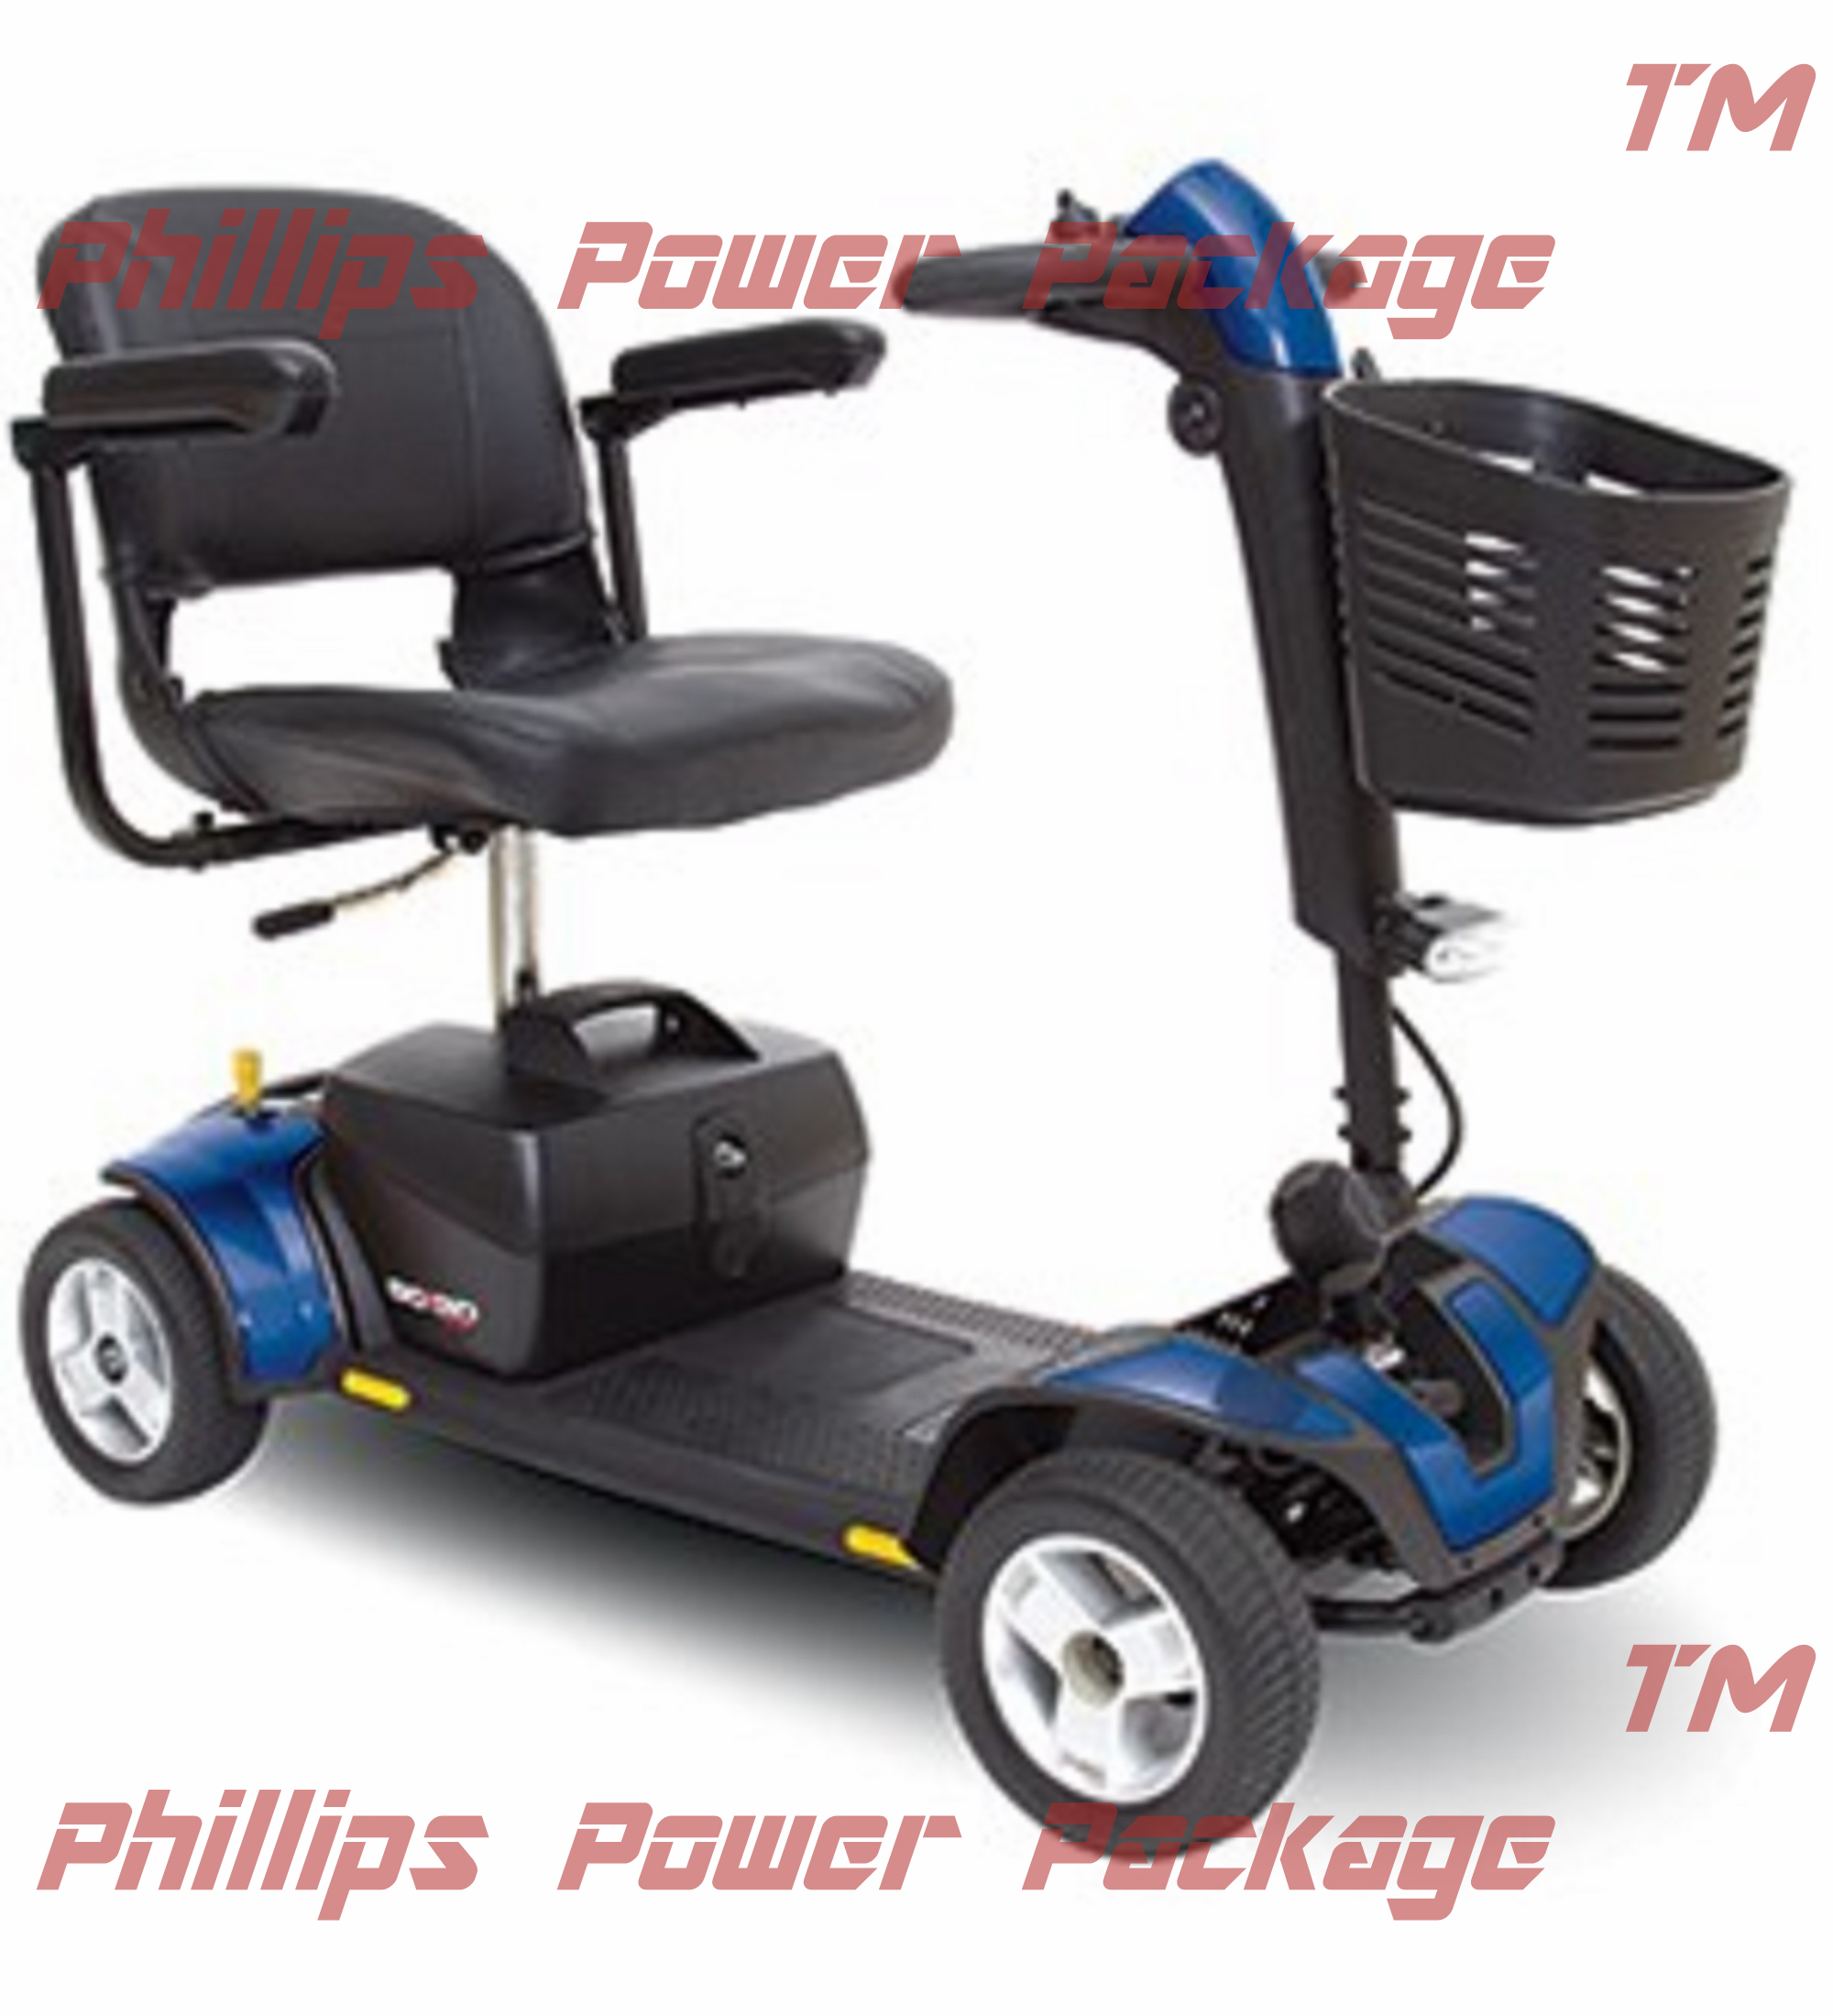 Pride Mobility - Go-Go Sport - Travel Scooter - 4-Wheel - Blue - PHILLIPS POWER PACKAGE TM